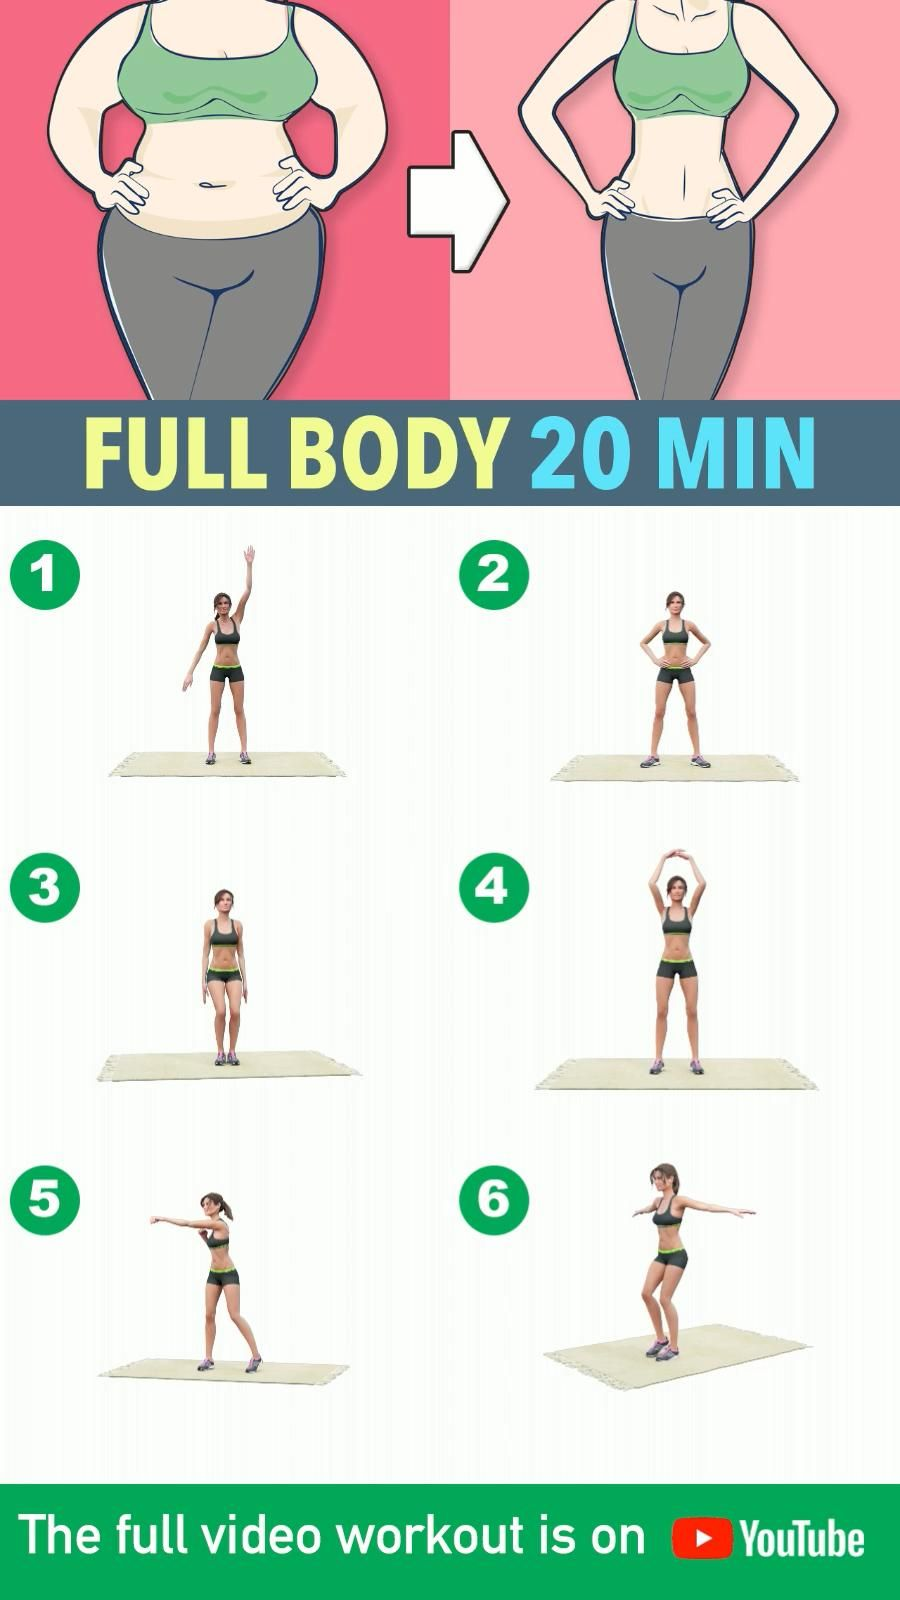 20 Minute Full Body Workout At Home - No Equipment